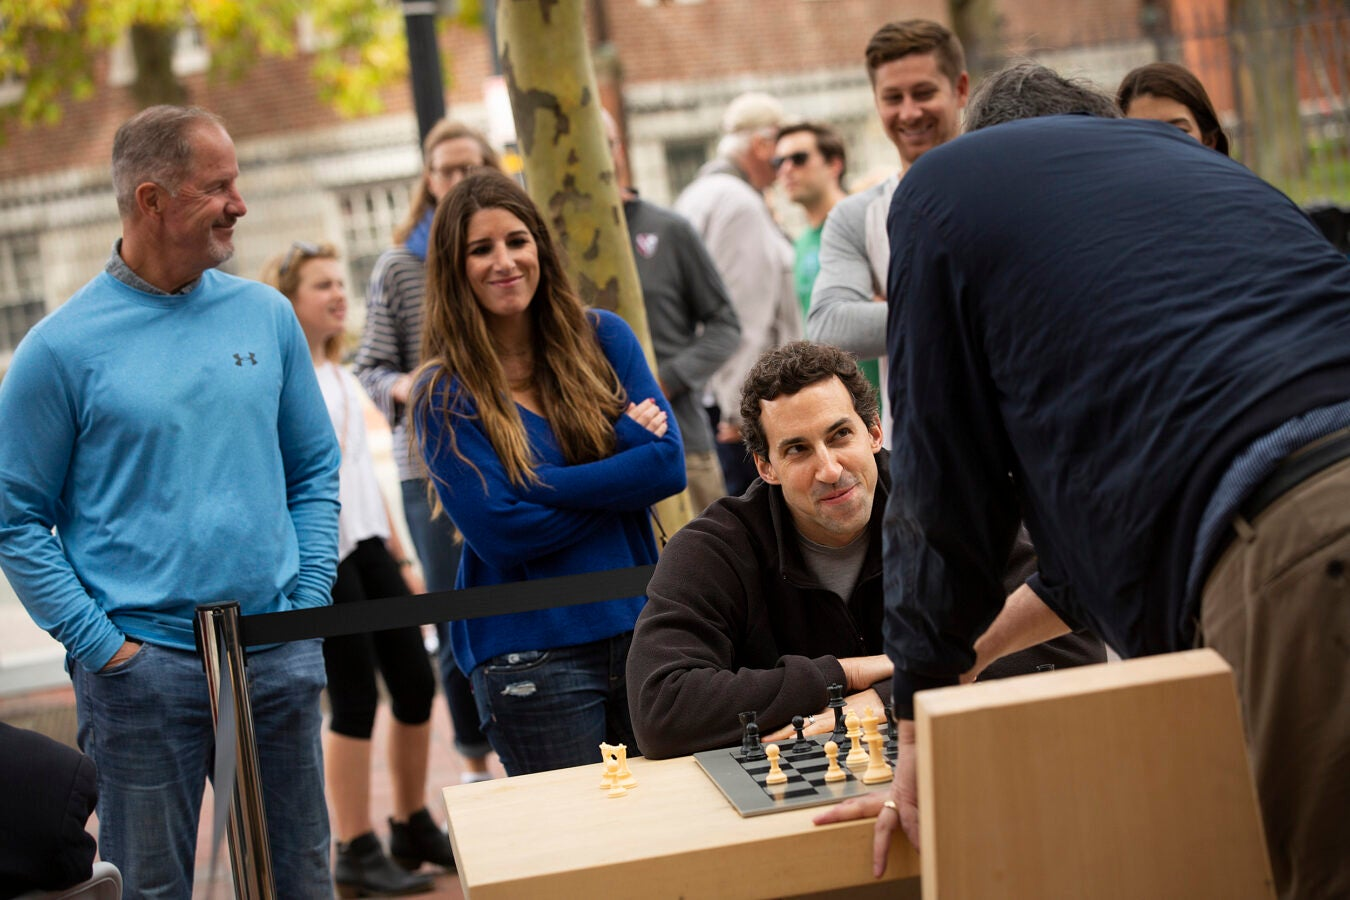 Two people playing chess outside the Smith Center